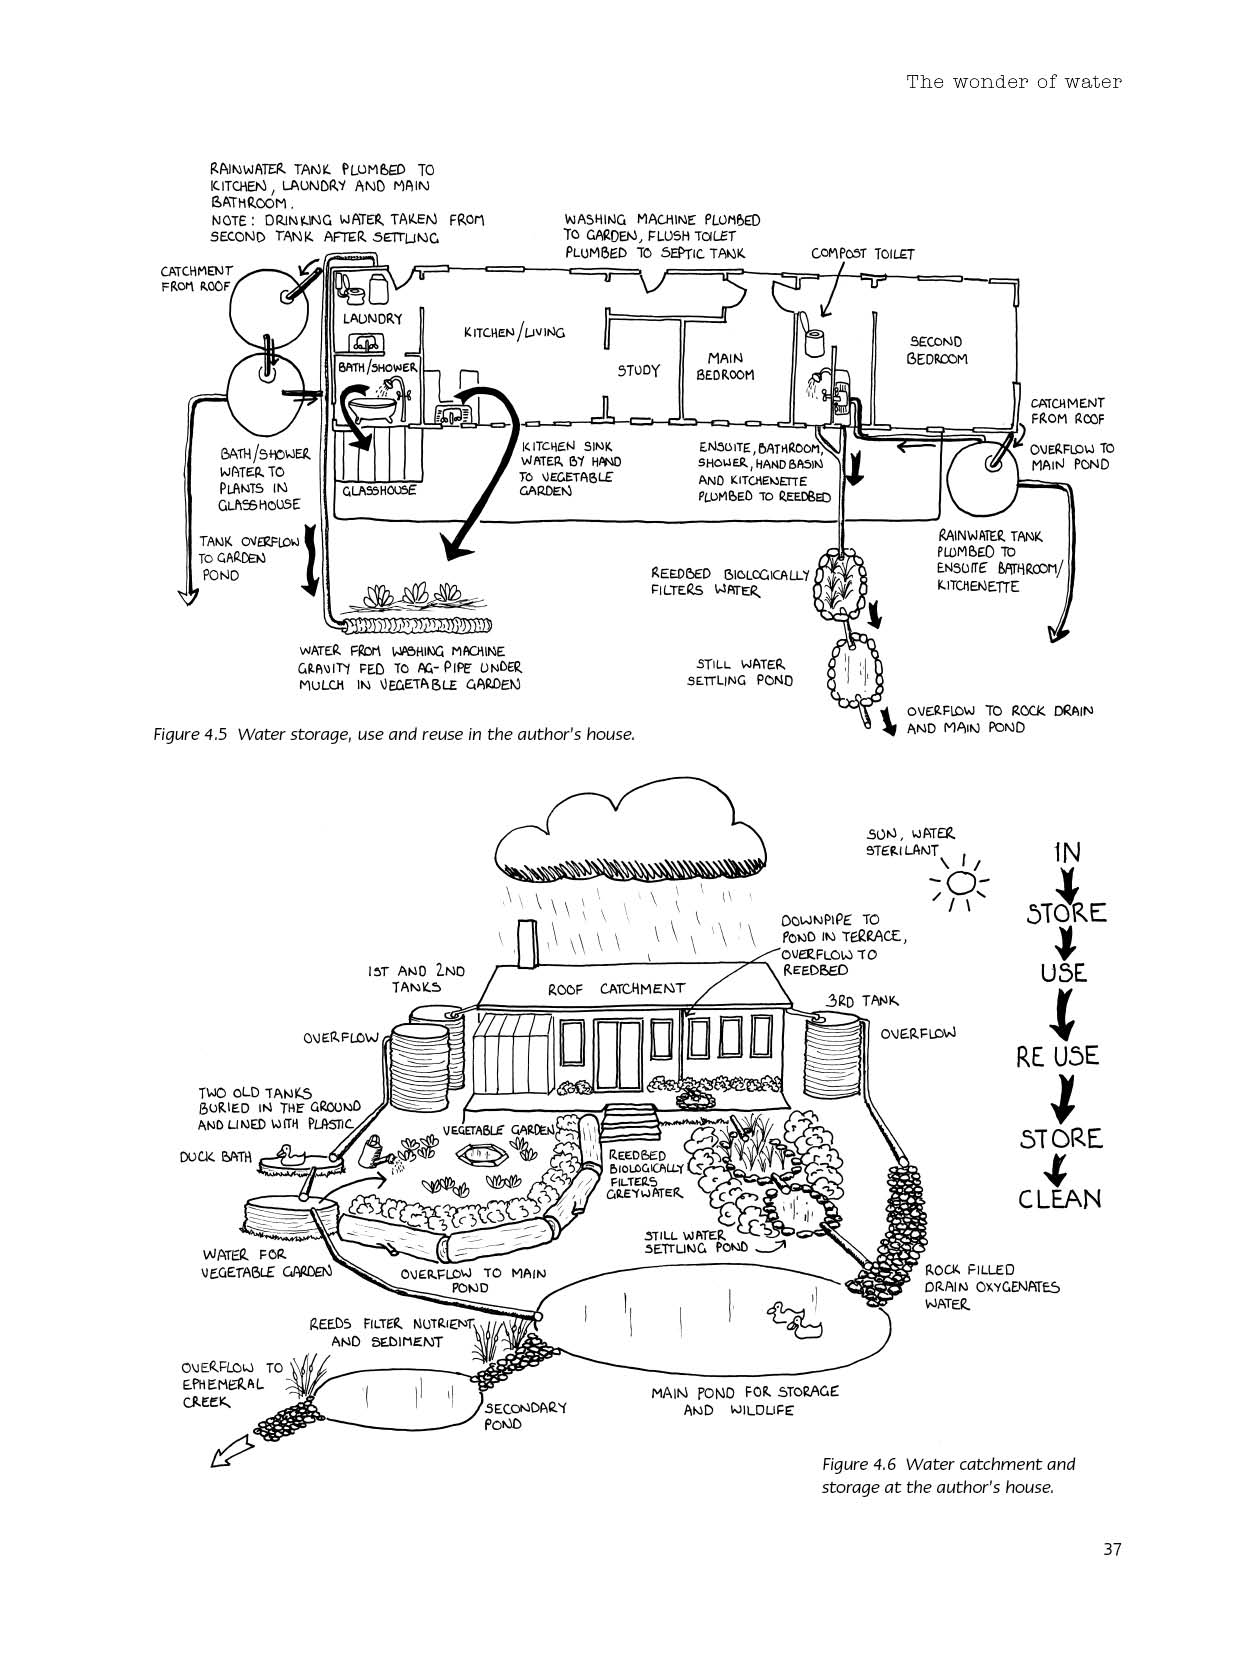 Permaculture Design Examples Google Search: Earth User's Guide To Permaculture By Rosemary Morrow